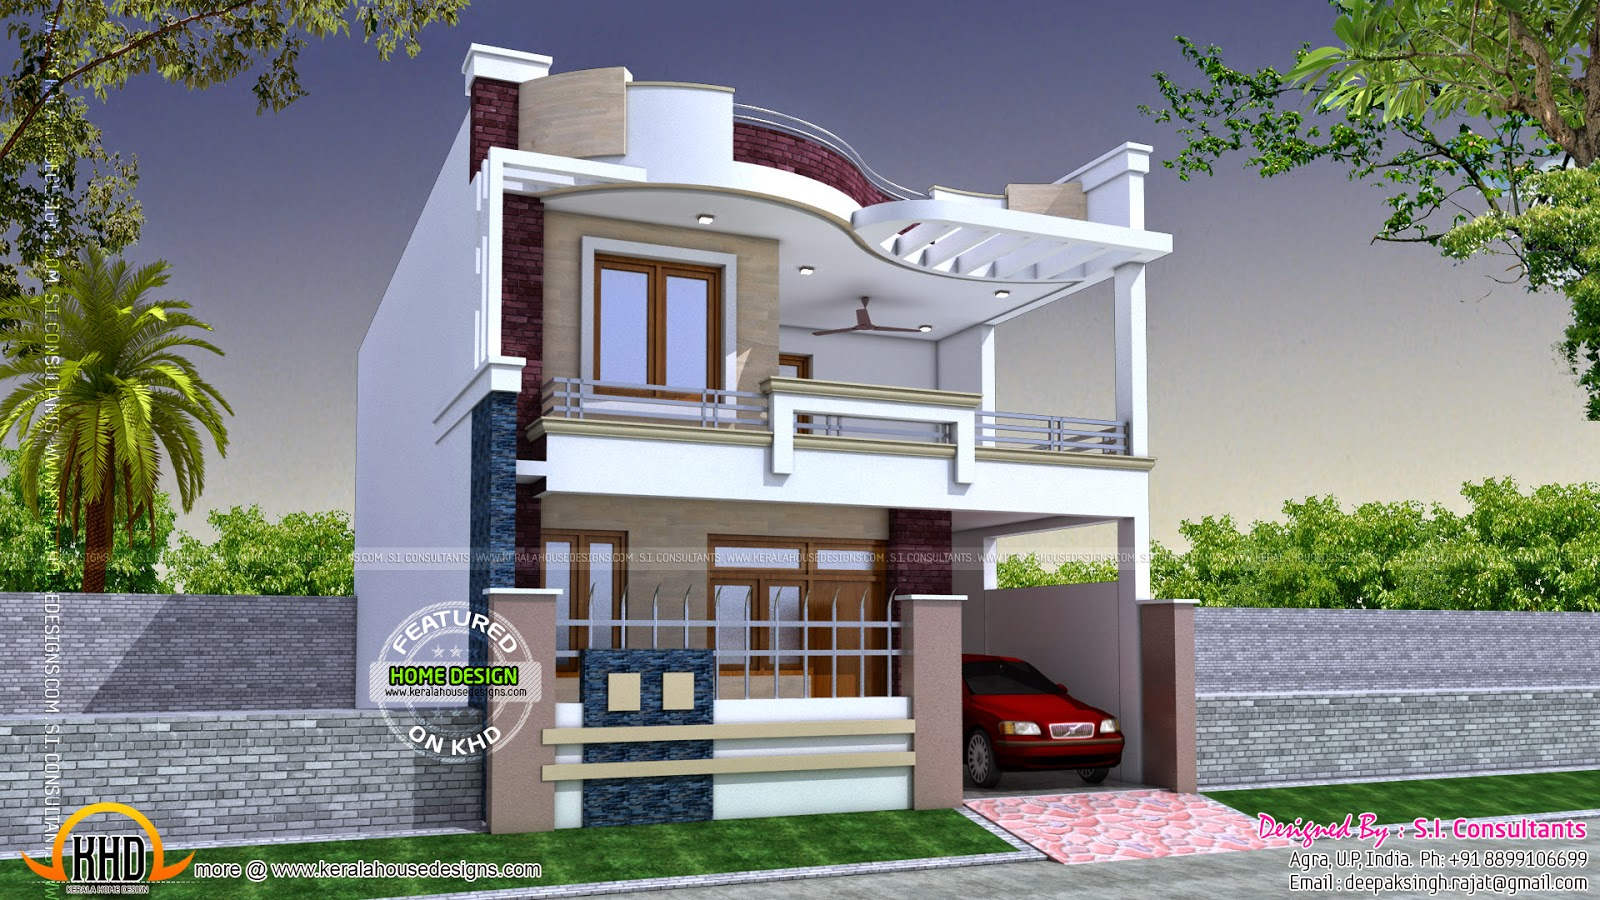 Modern indian home design kerala home design and floor plans for Modern new england home plans